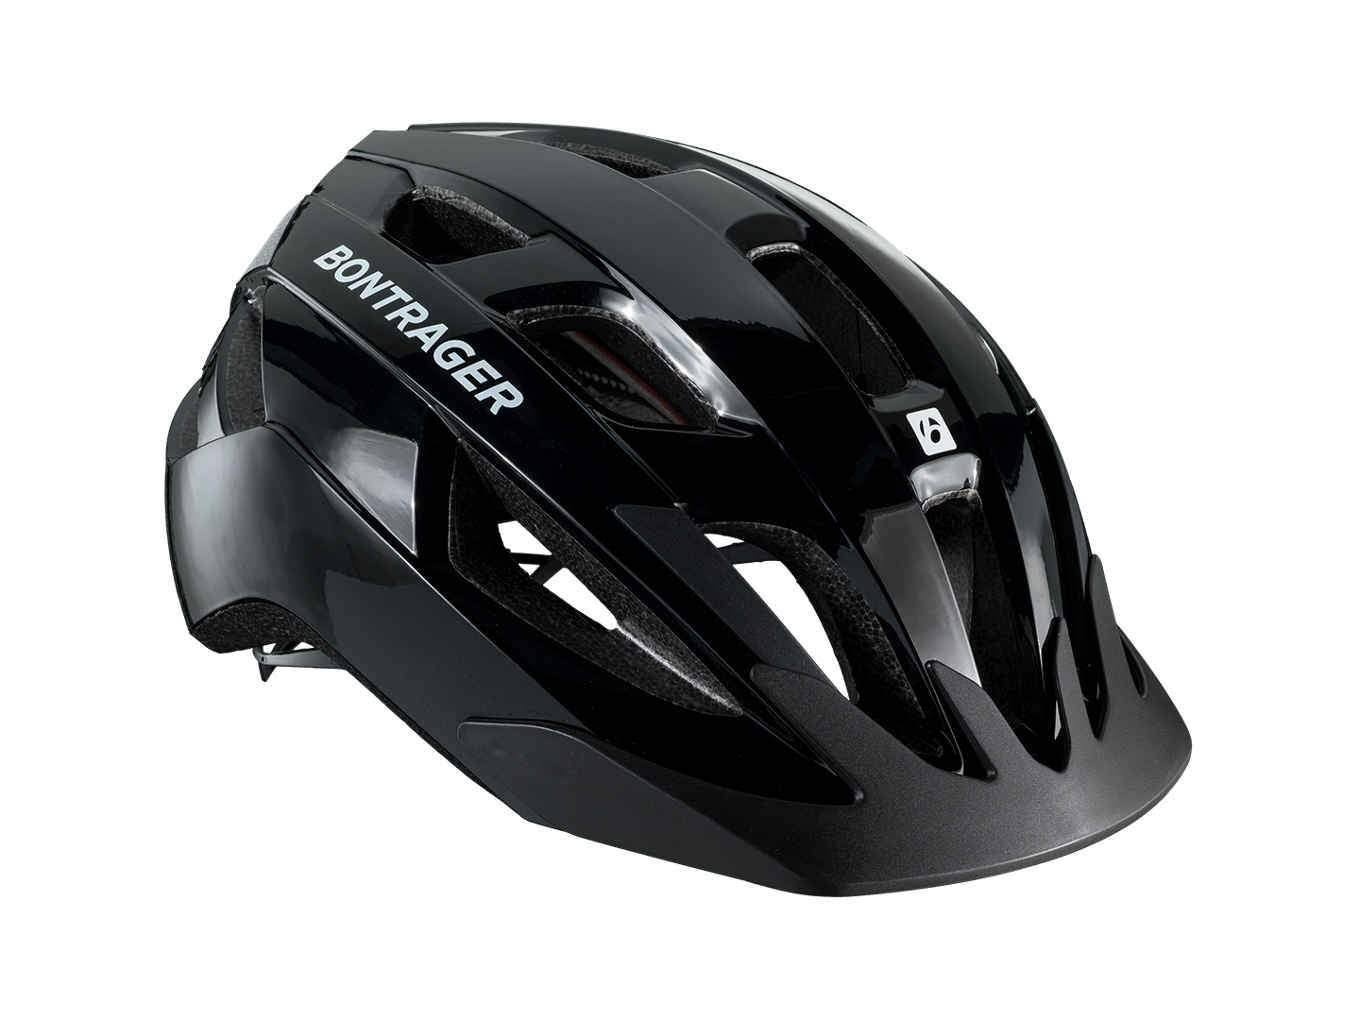 Bontrager Solstice Bike Helmet - Black - Small/Medium